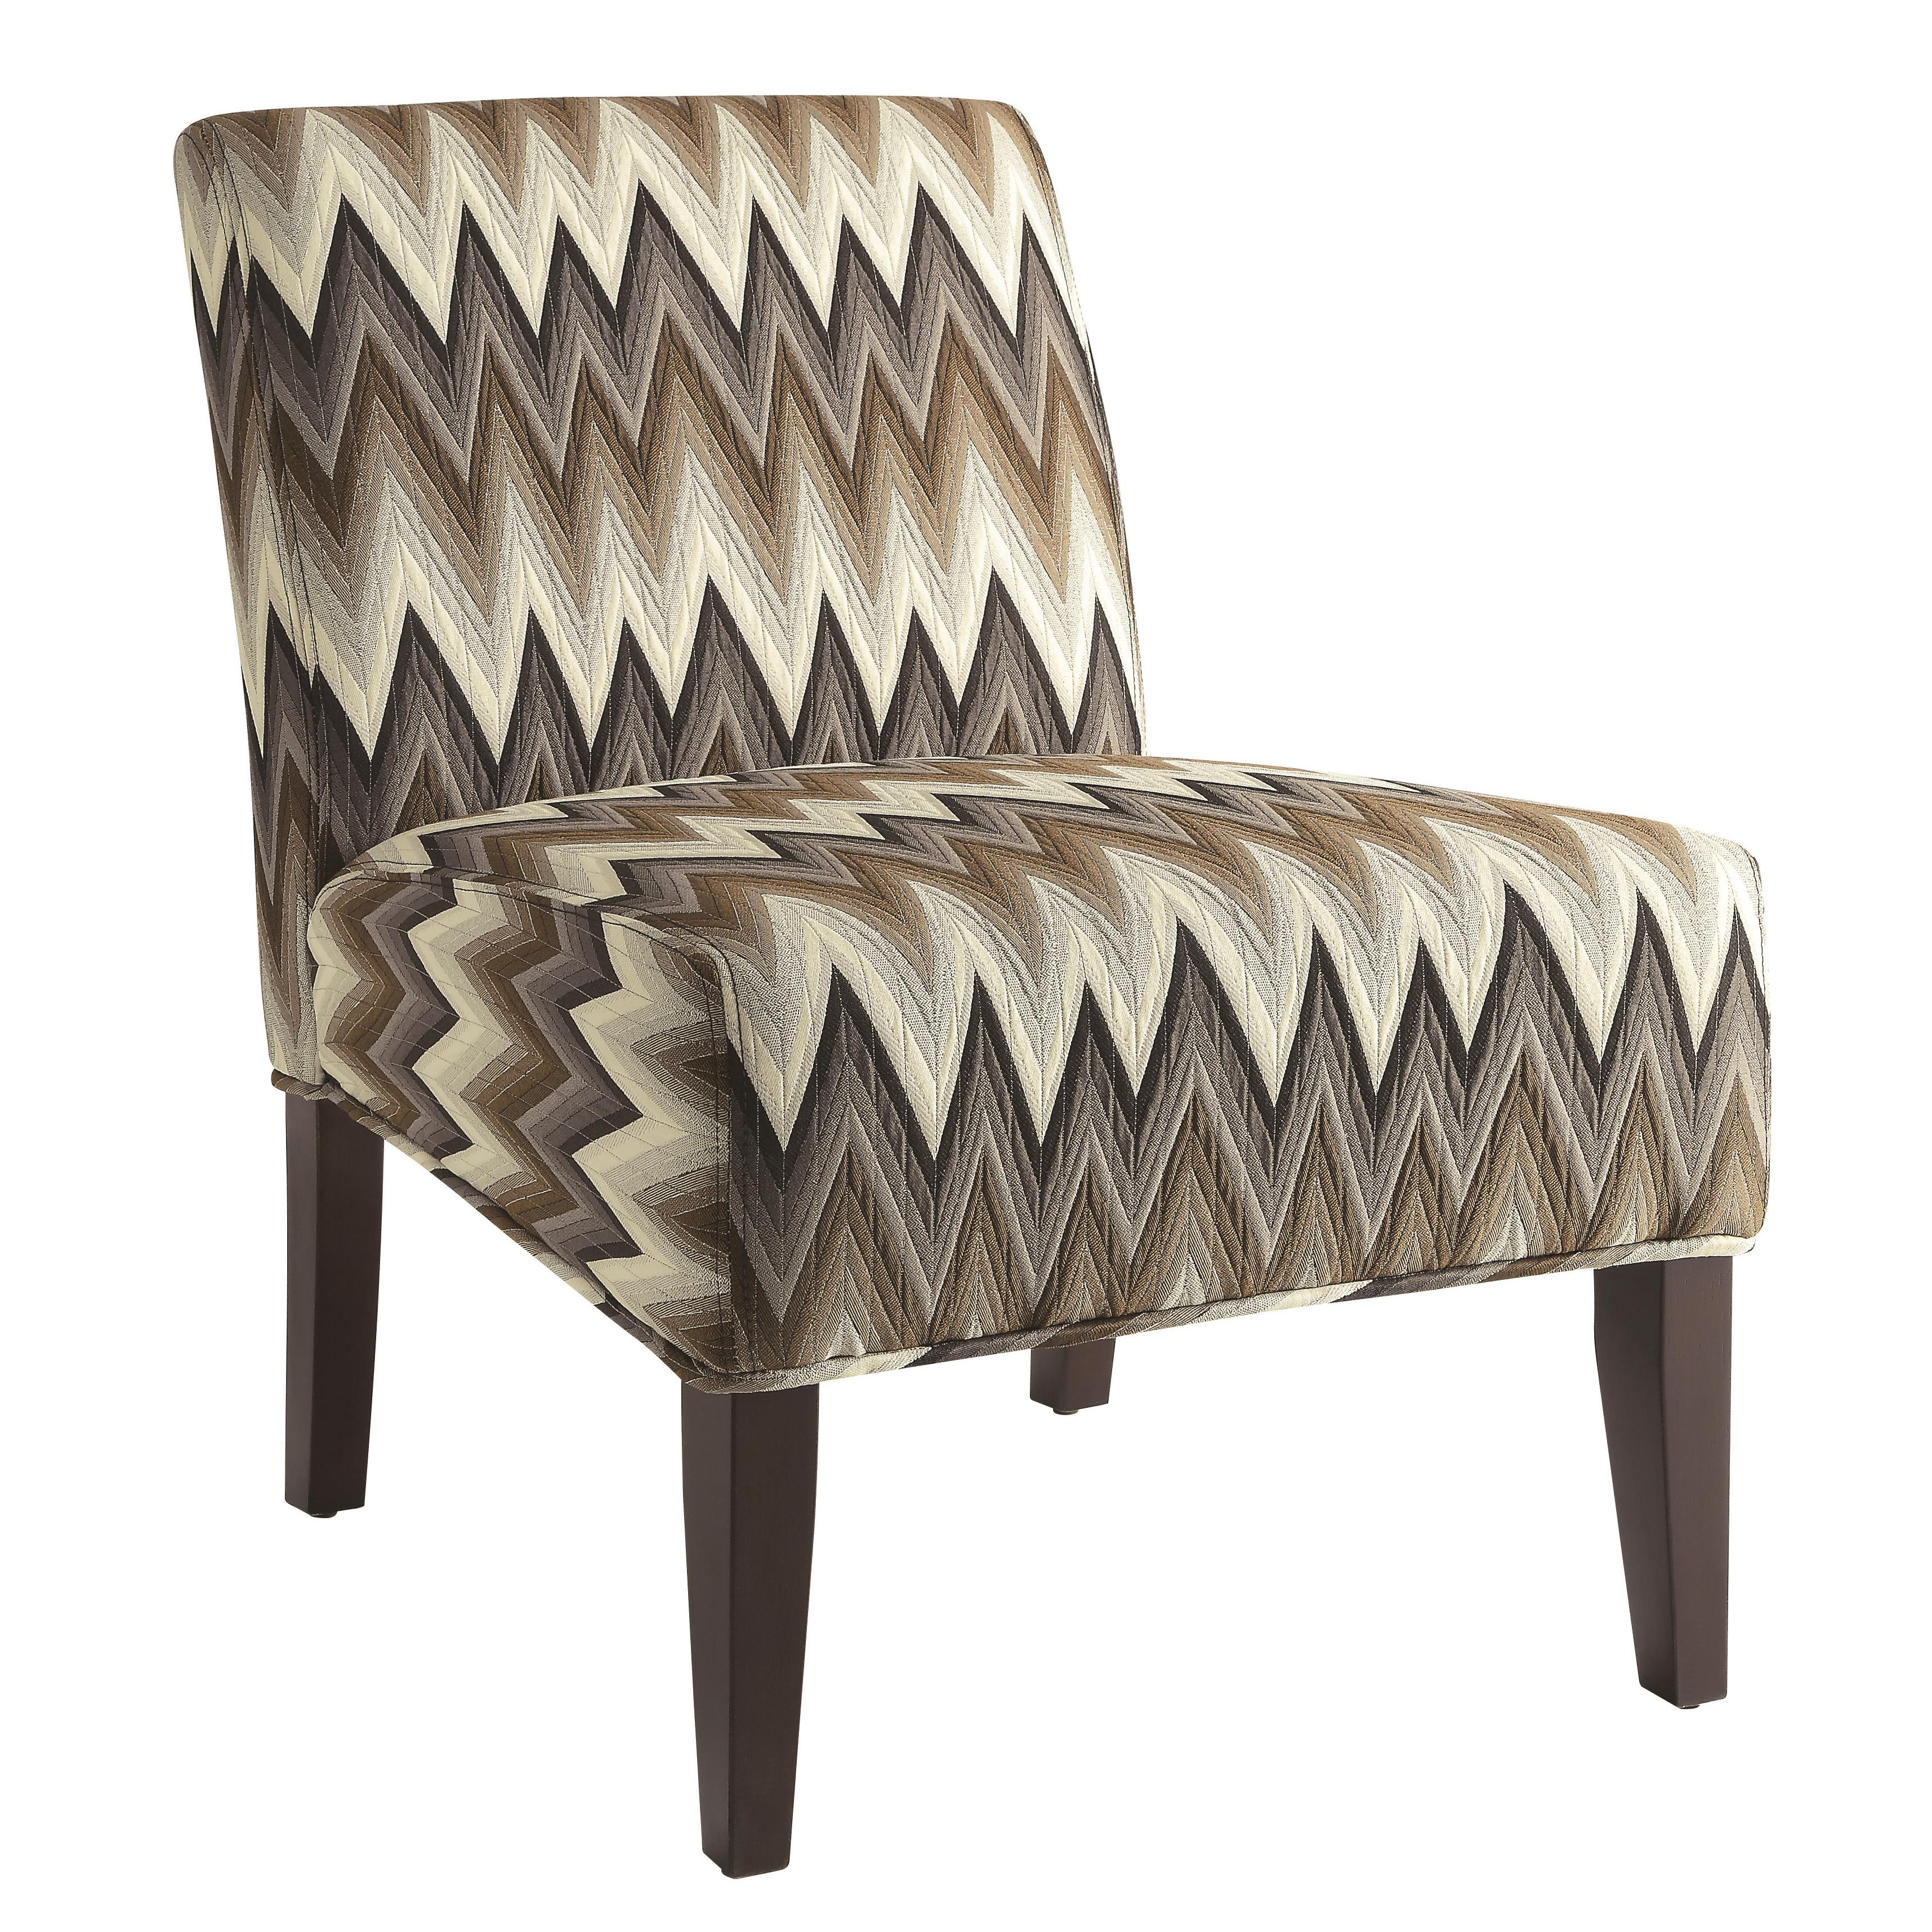 Accent Seating Upholstered Parsons Chair With Chevron